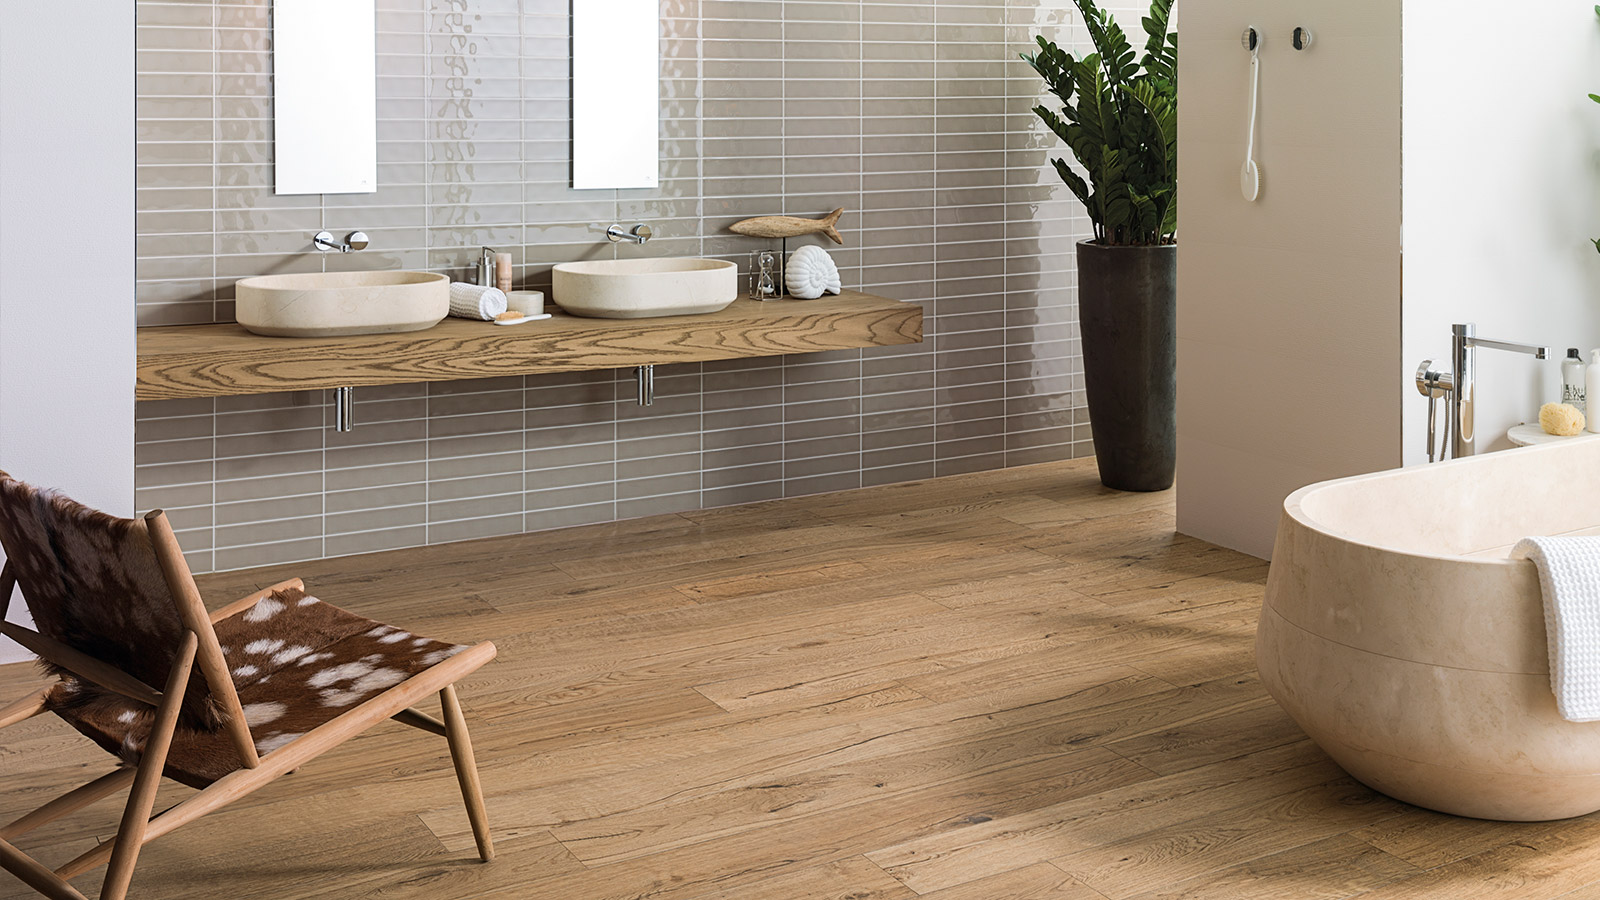 GET THE LOOK: We combine natural stone and wood in the bathroom with